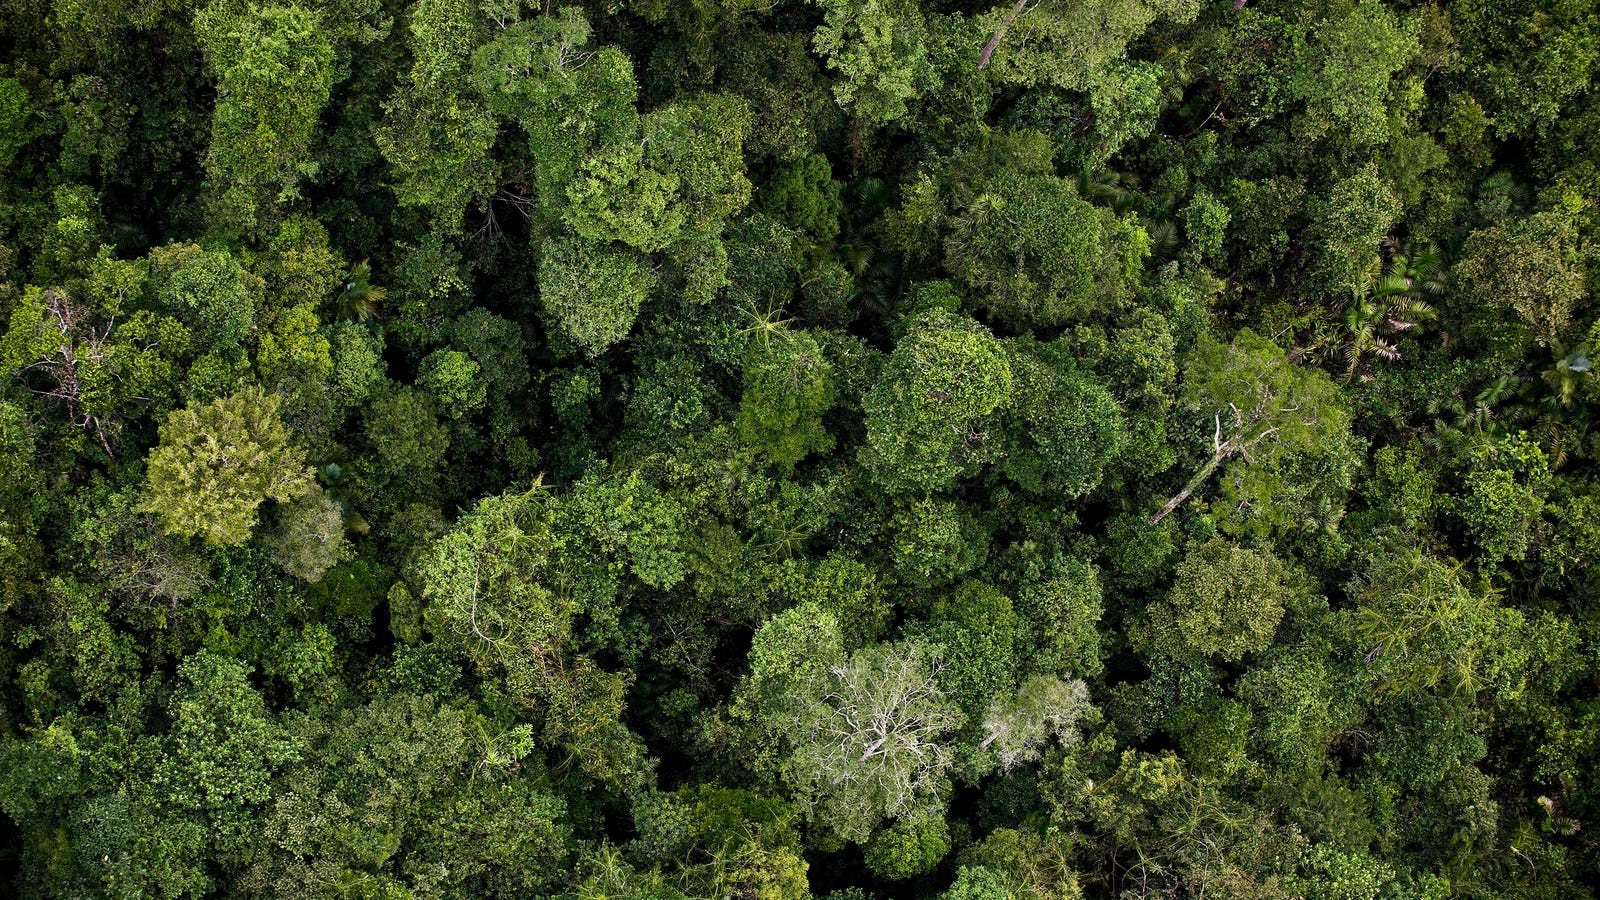 Calculation Shows We Could Add a U.S.-Sized Forest to the Planet to Fight Climate Change